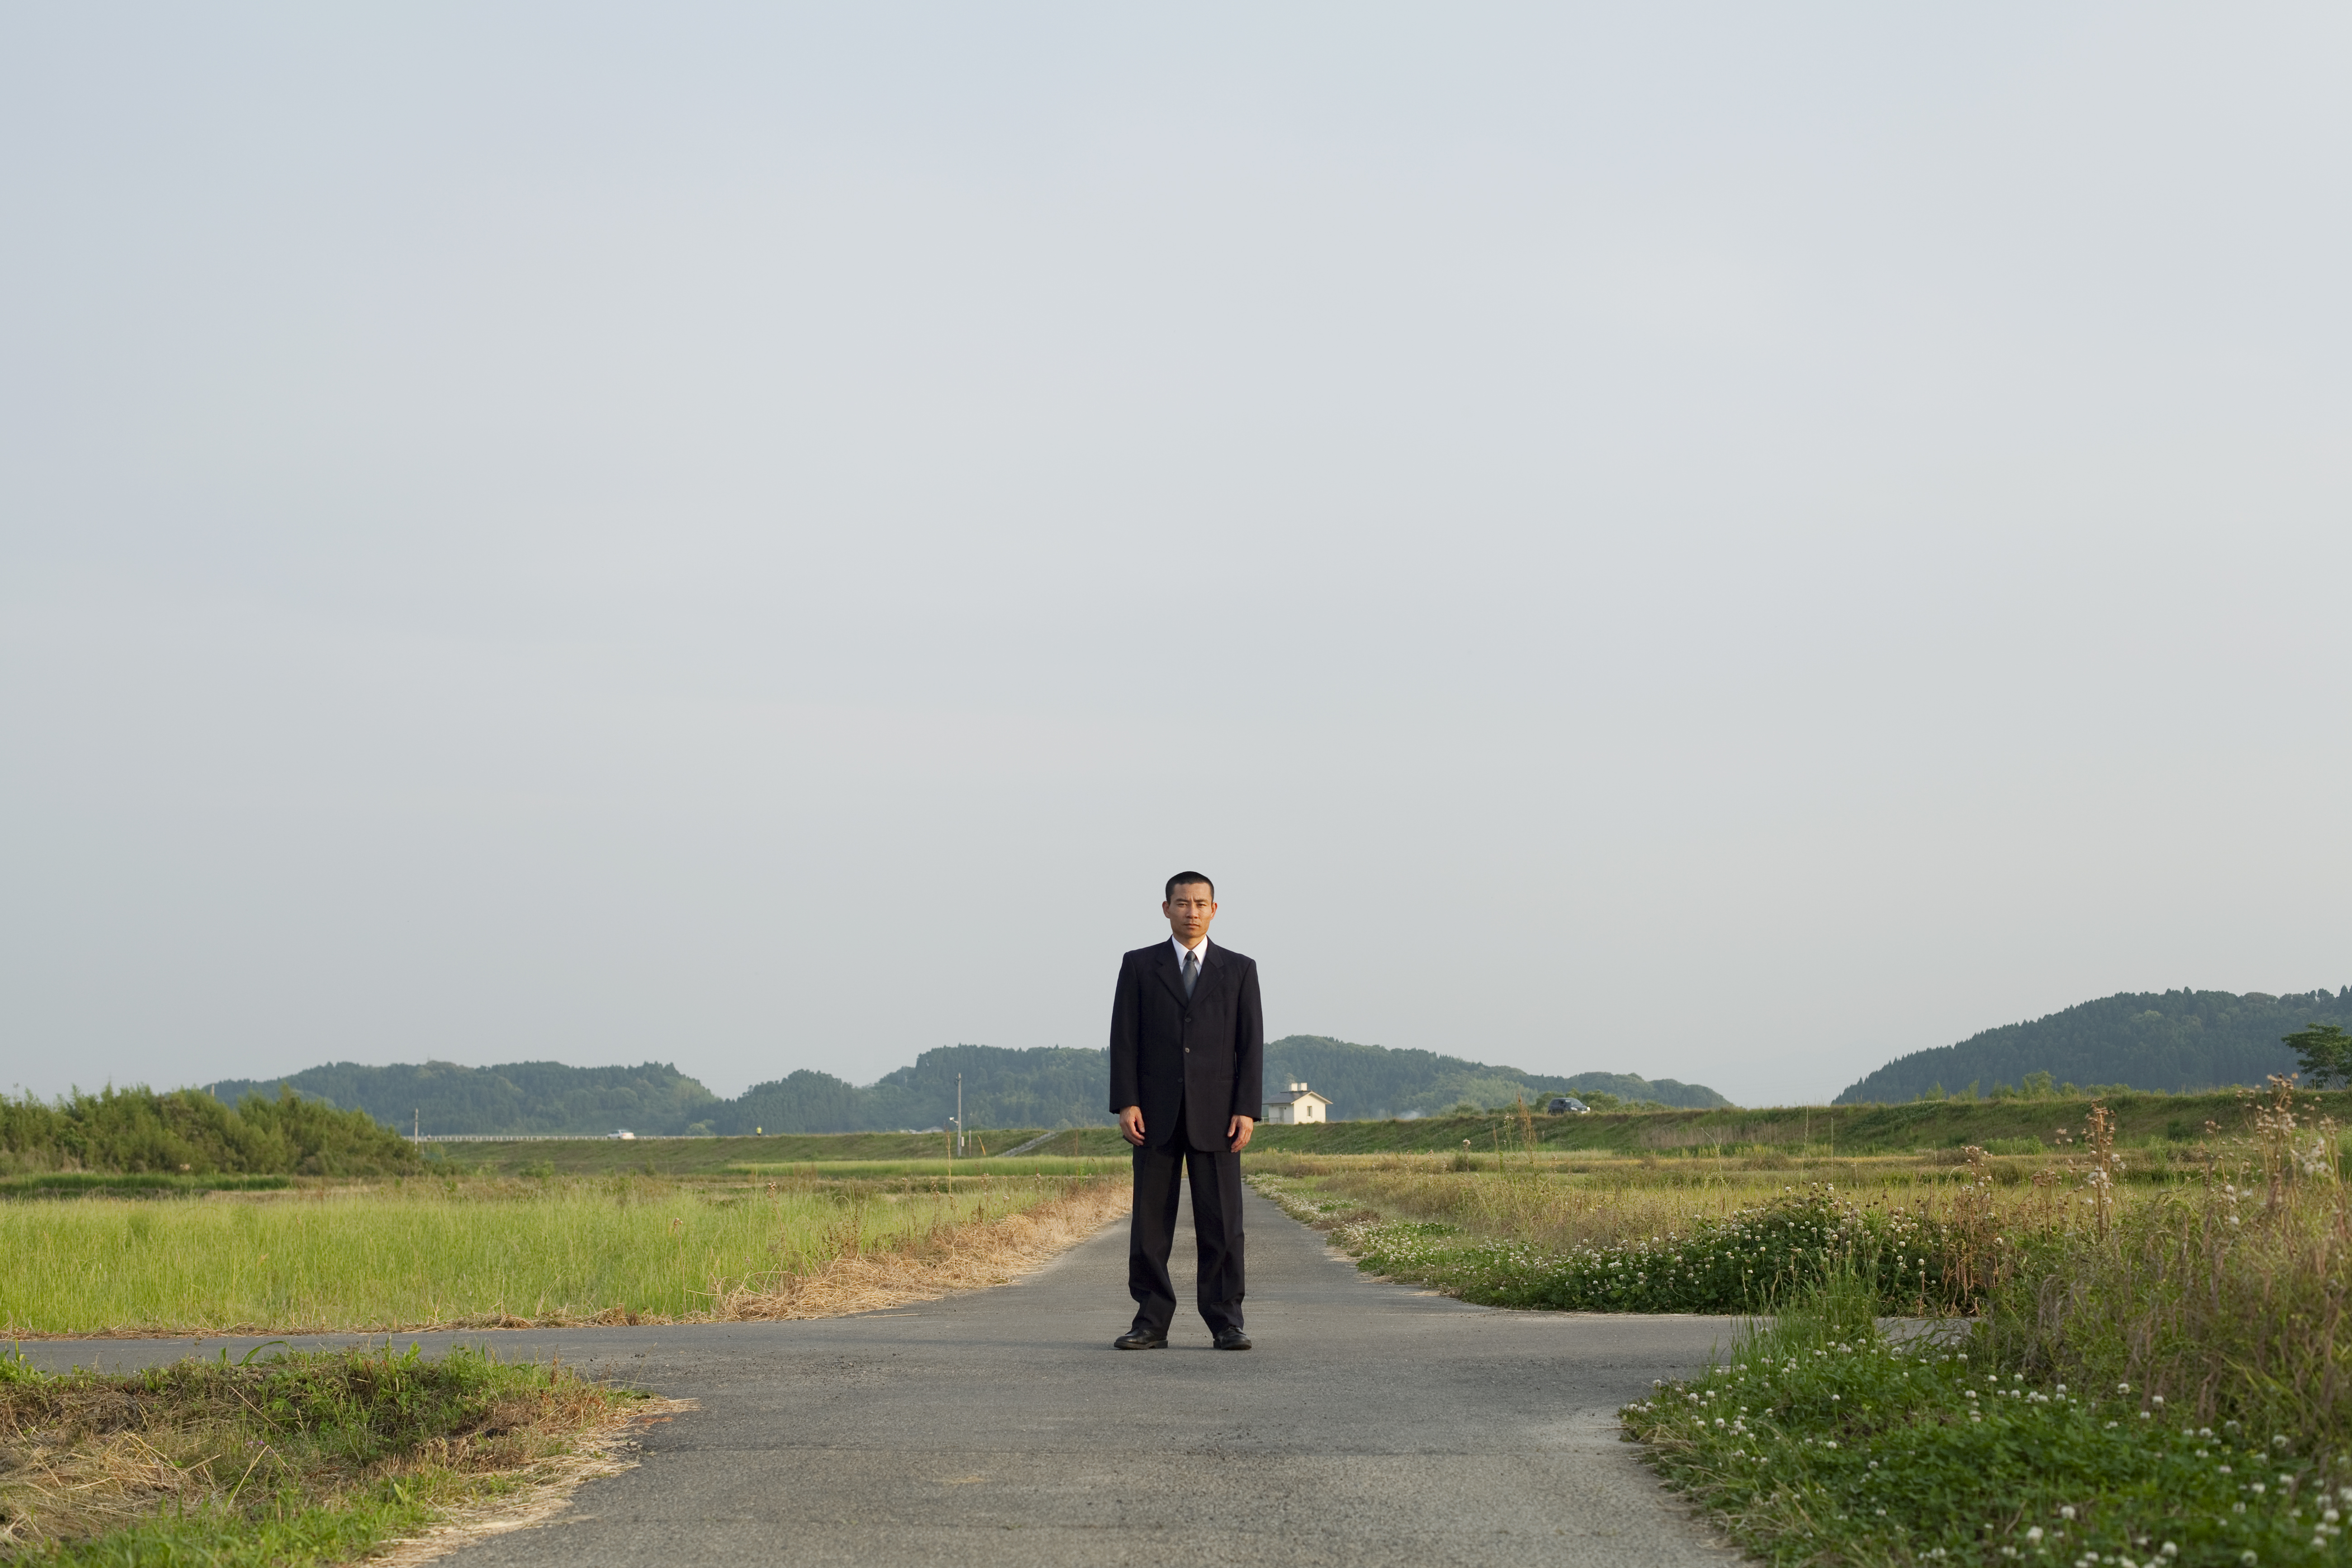 A businessman standing on the country road.